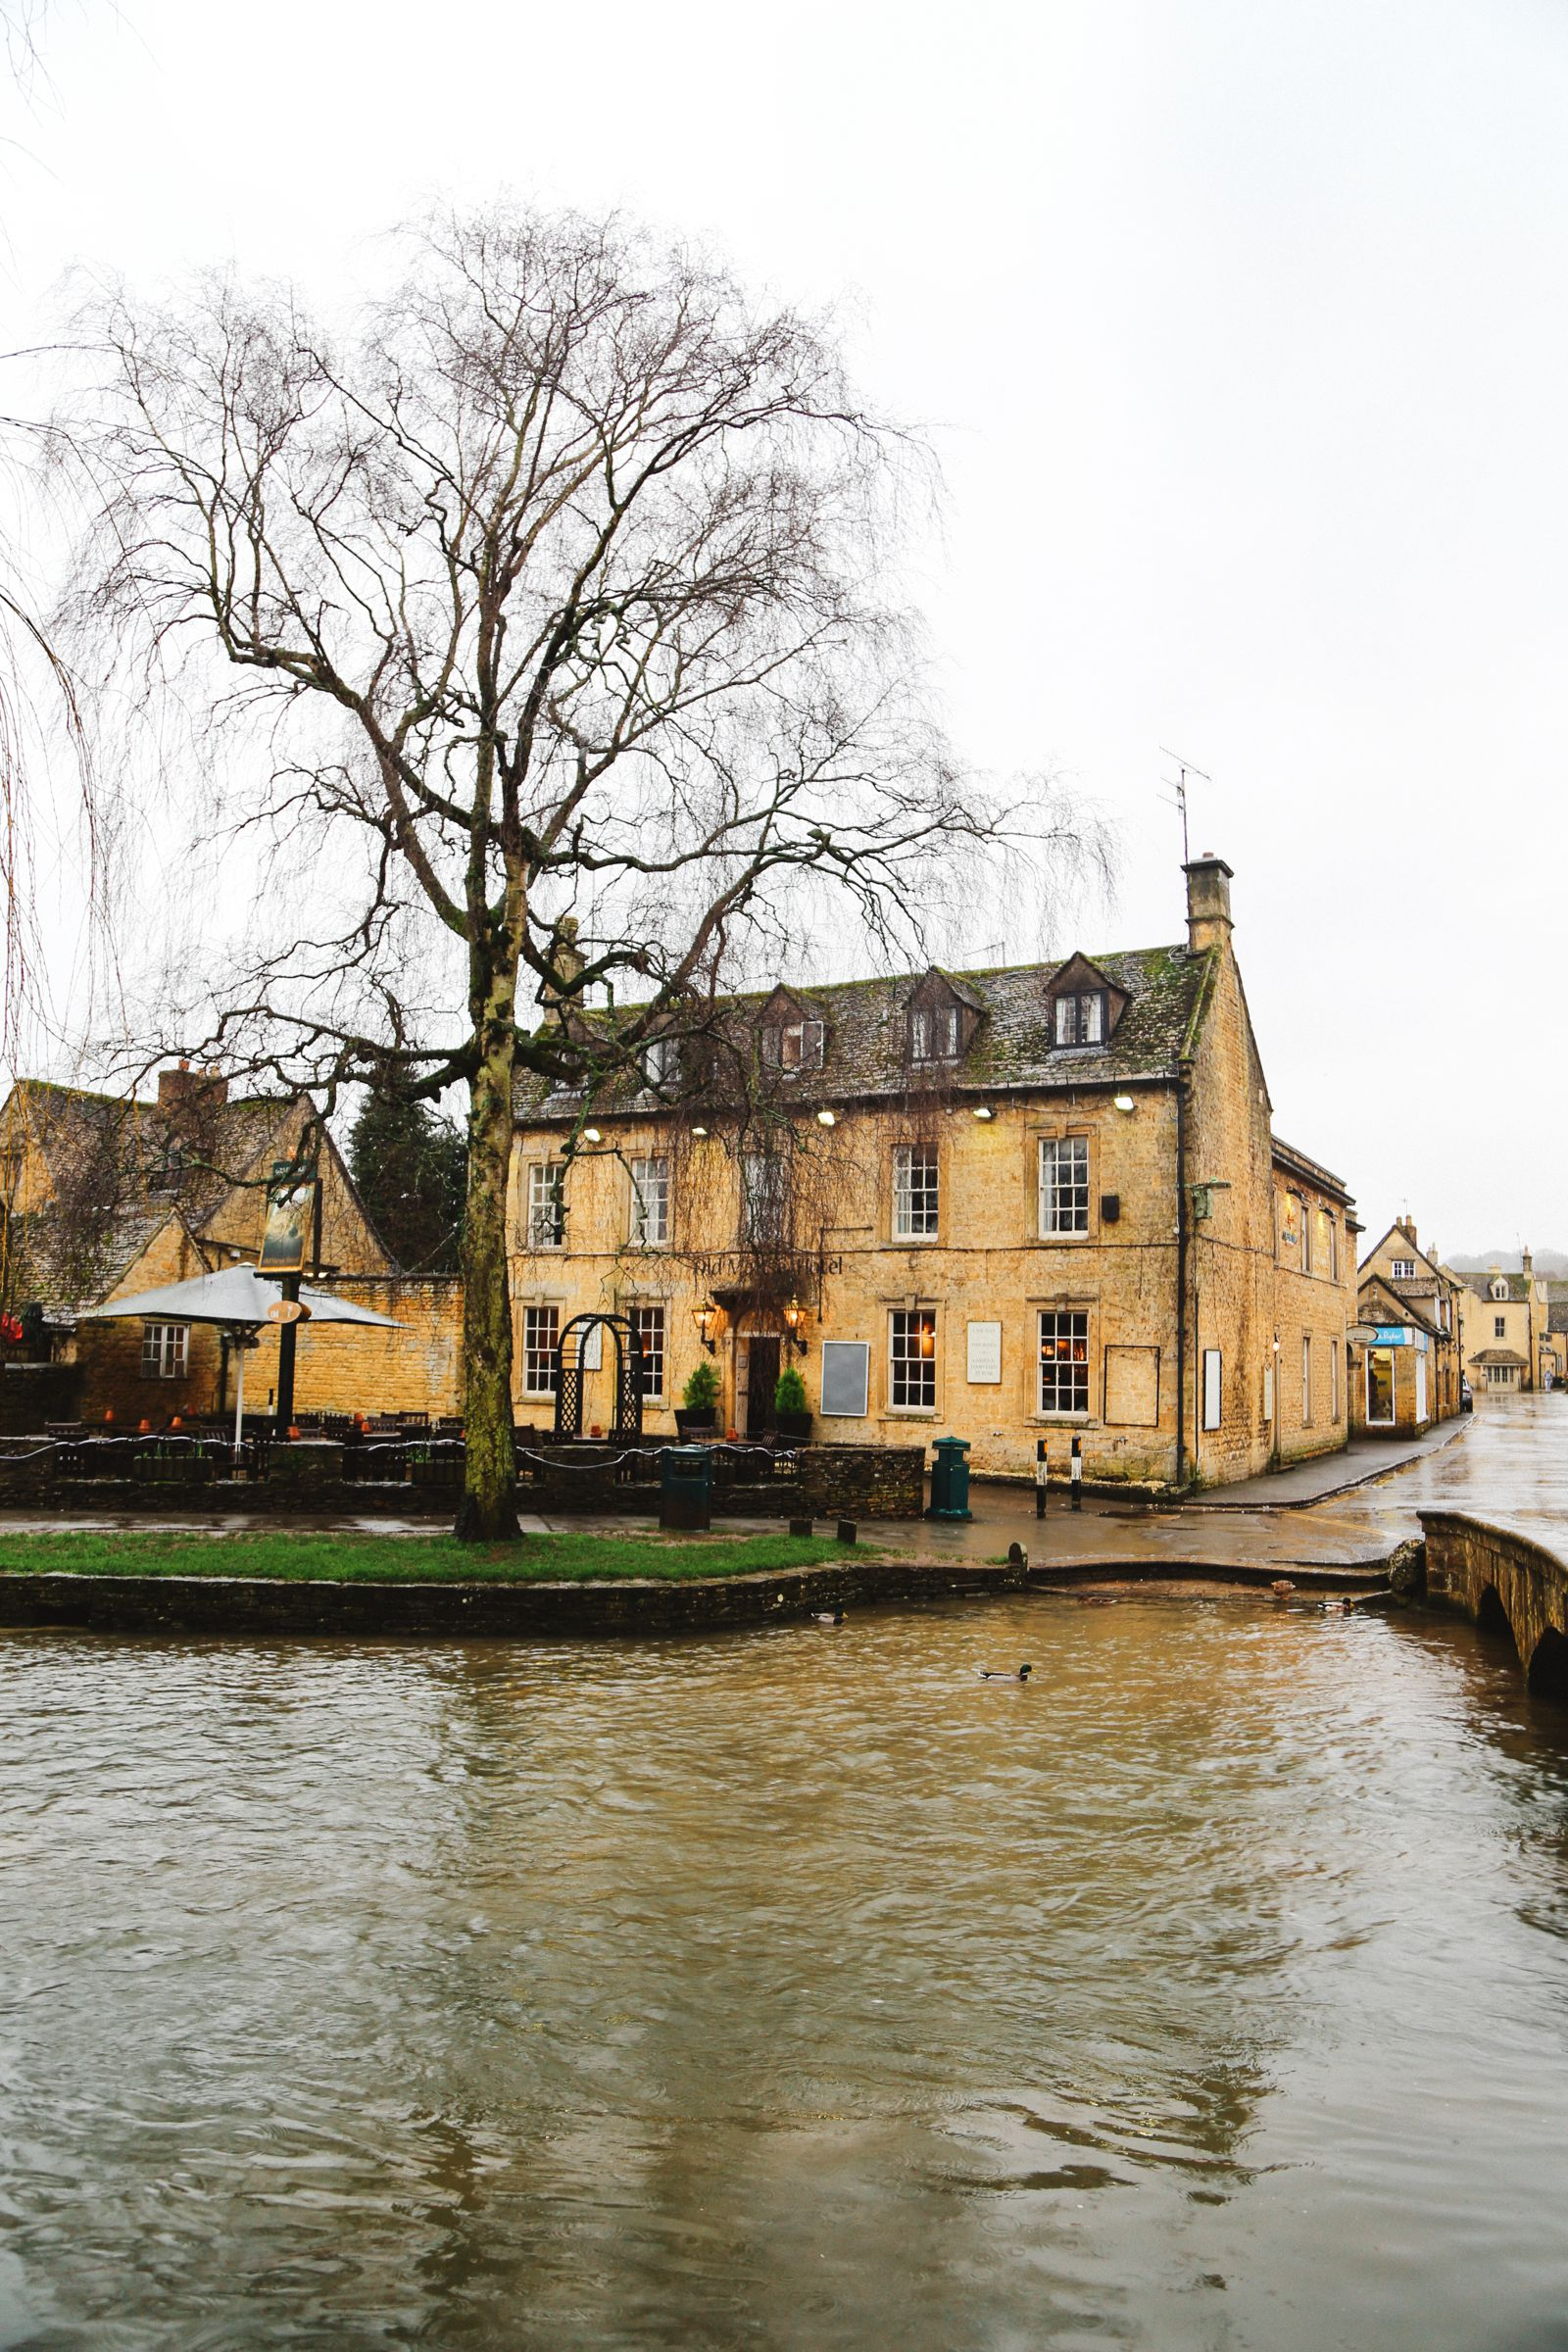 Rainy Days In The English Countryside... The Wood Norton, Bourton-On-The-Water, Broadway, Cotswolds, Stow-on-the-wold (5)